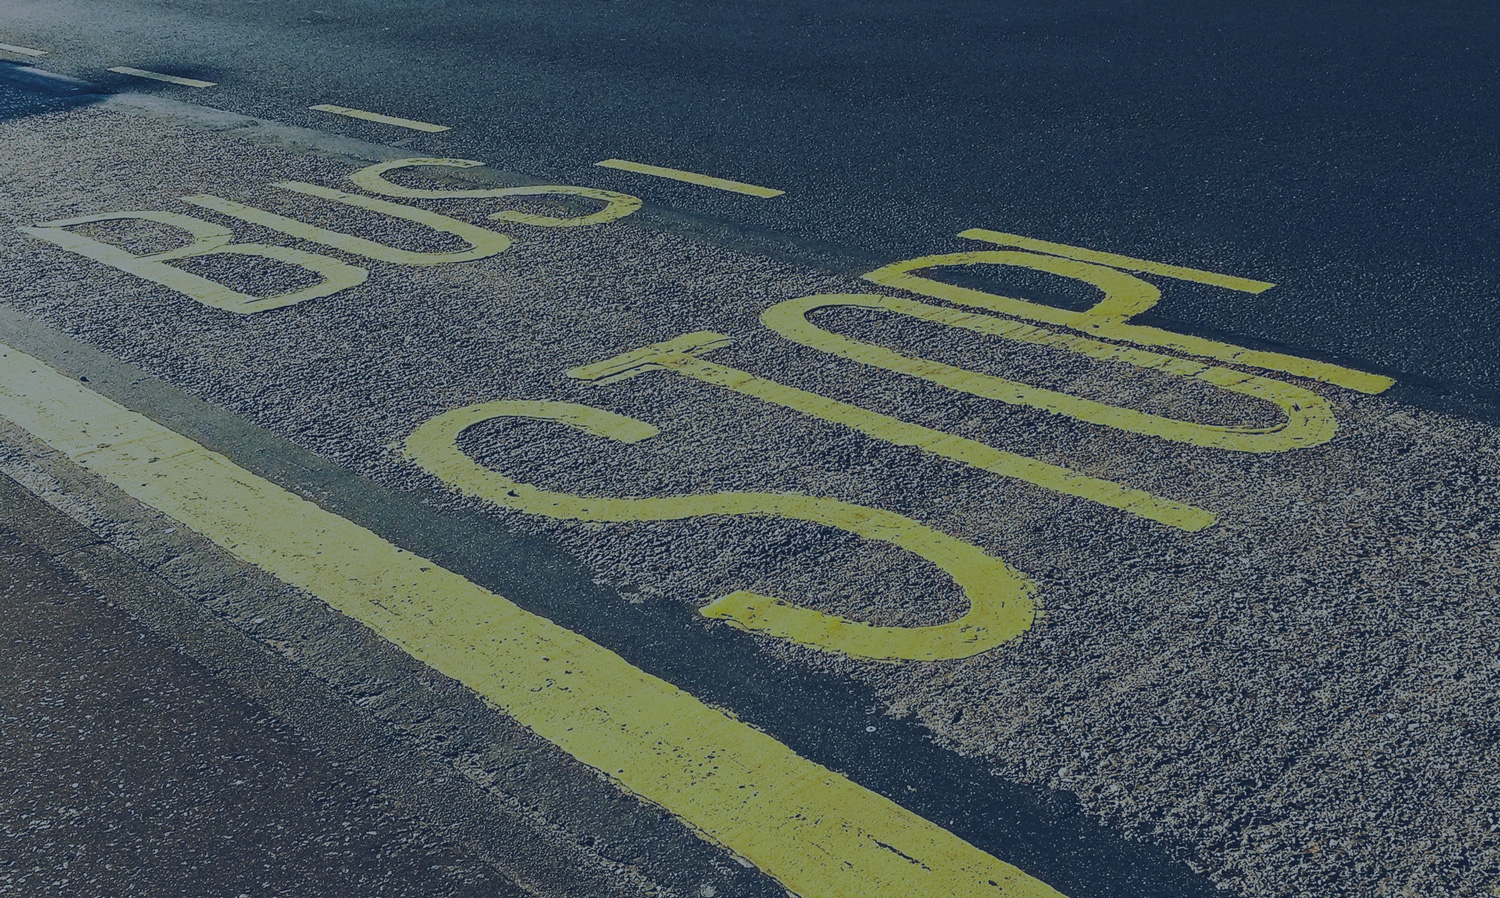 Bus Stop marking on road